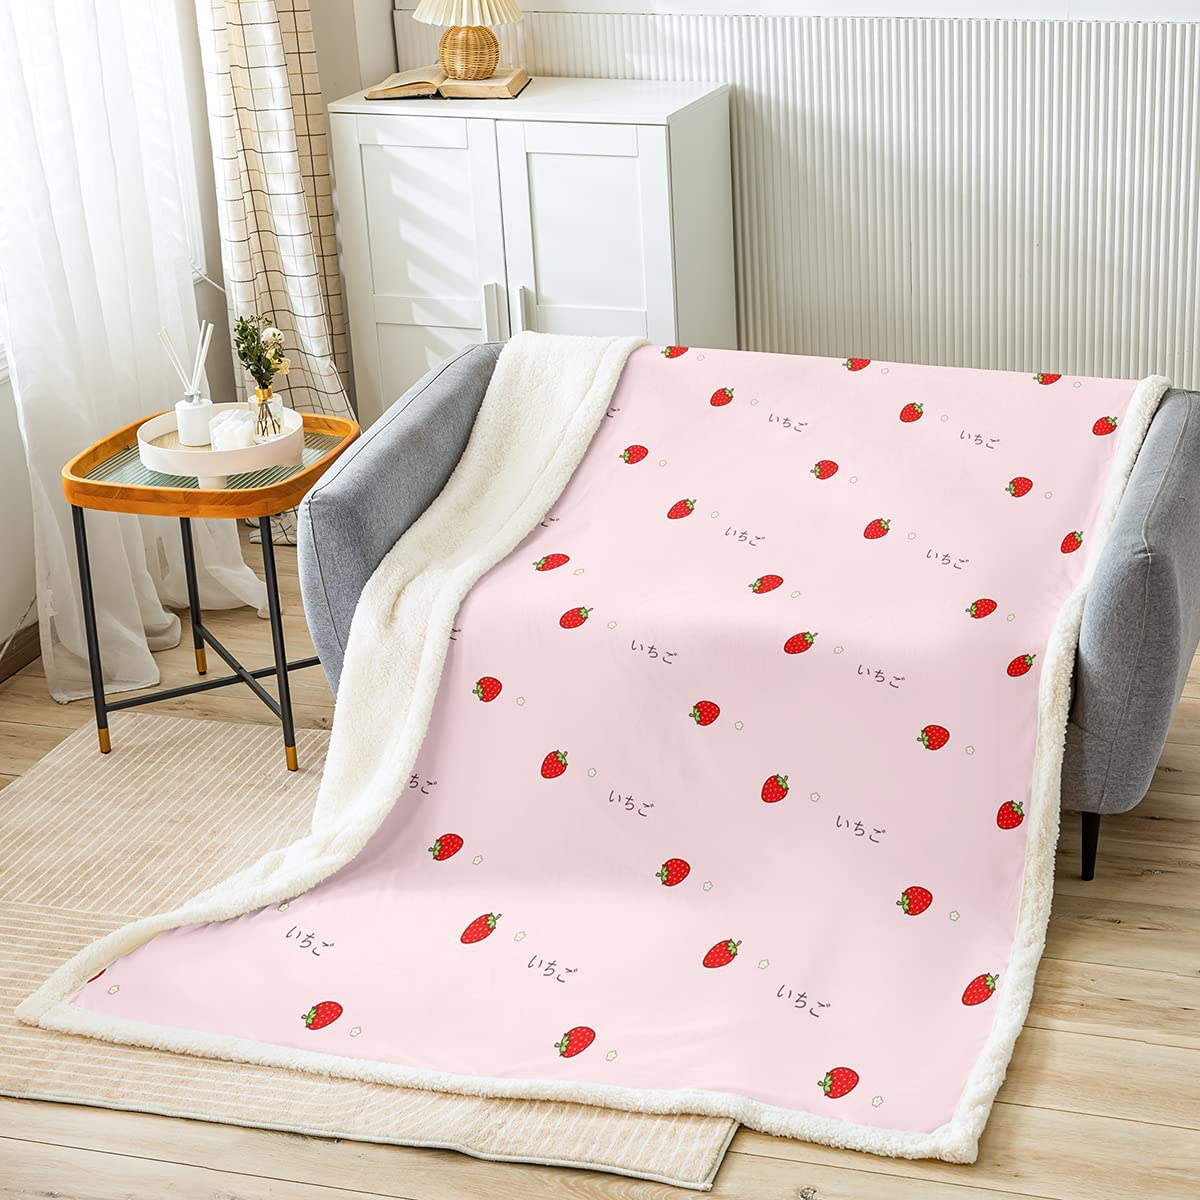 Castle Finally resale start Fairy Red Strawberry Cute Throw Blanket Fruits Max 67% OFF